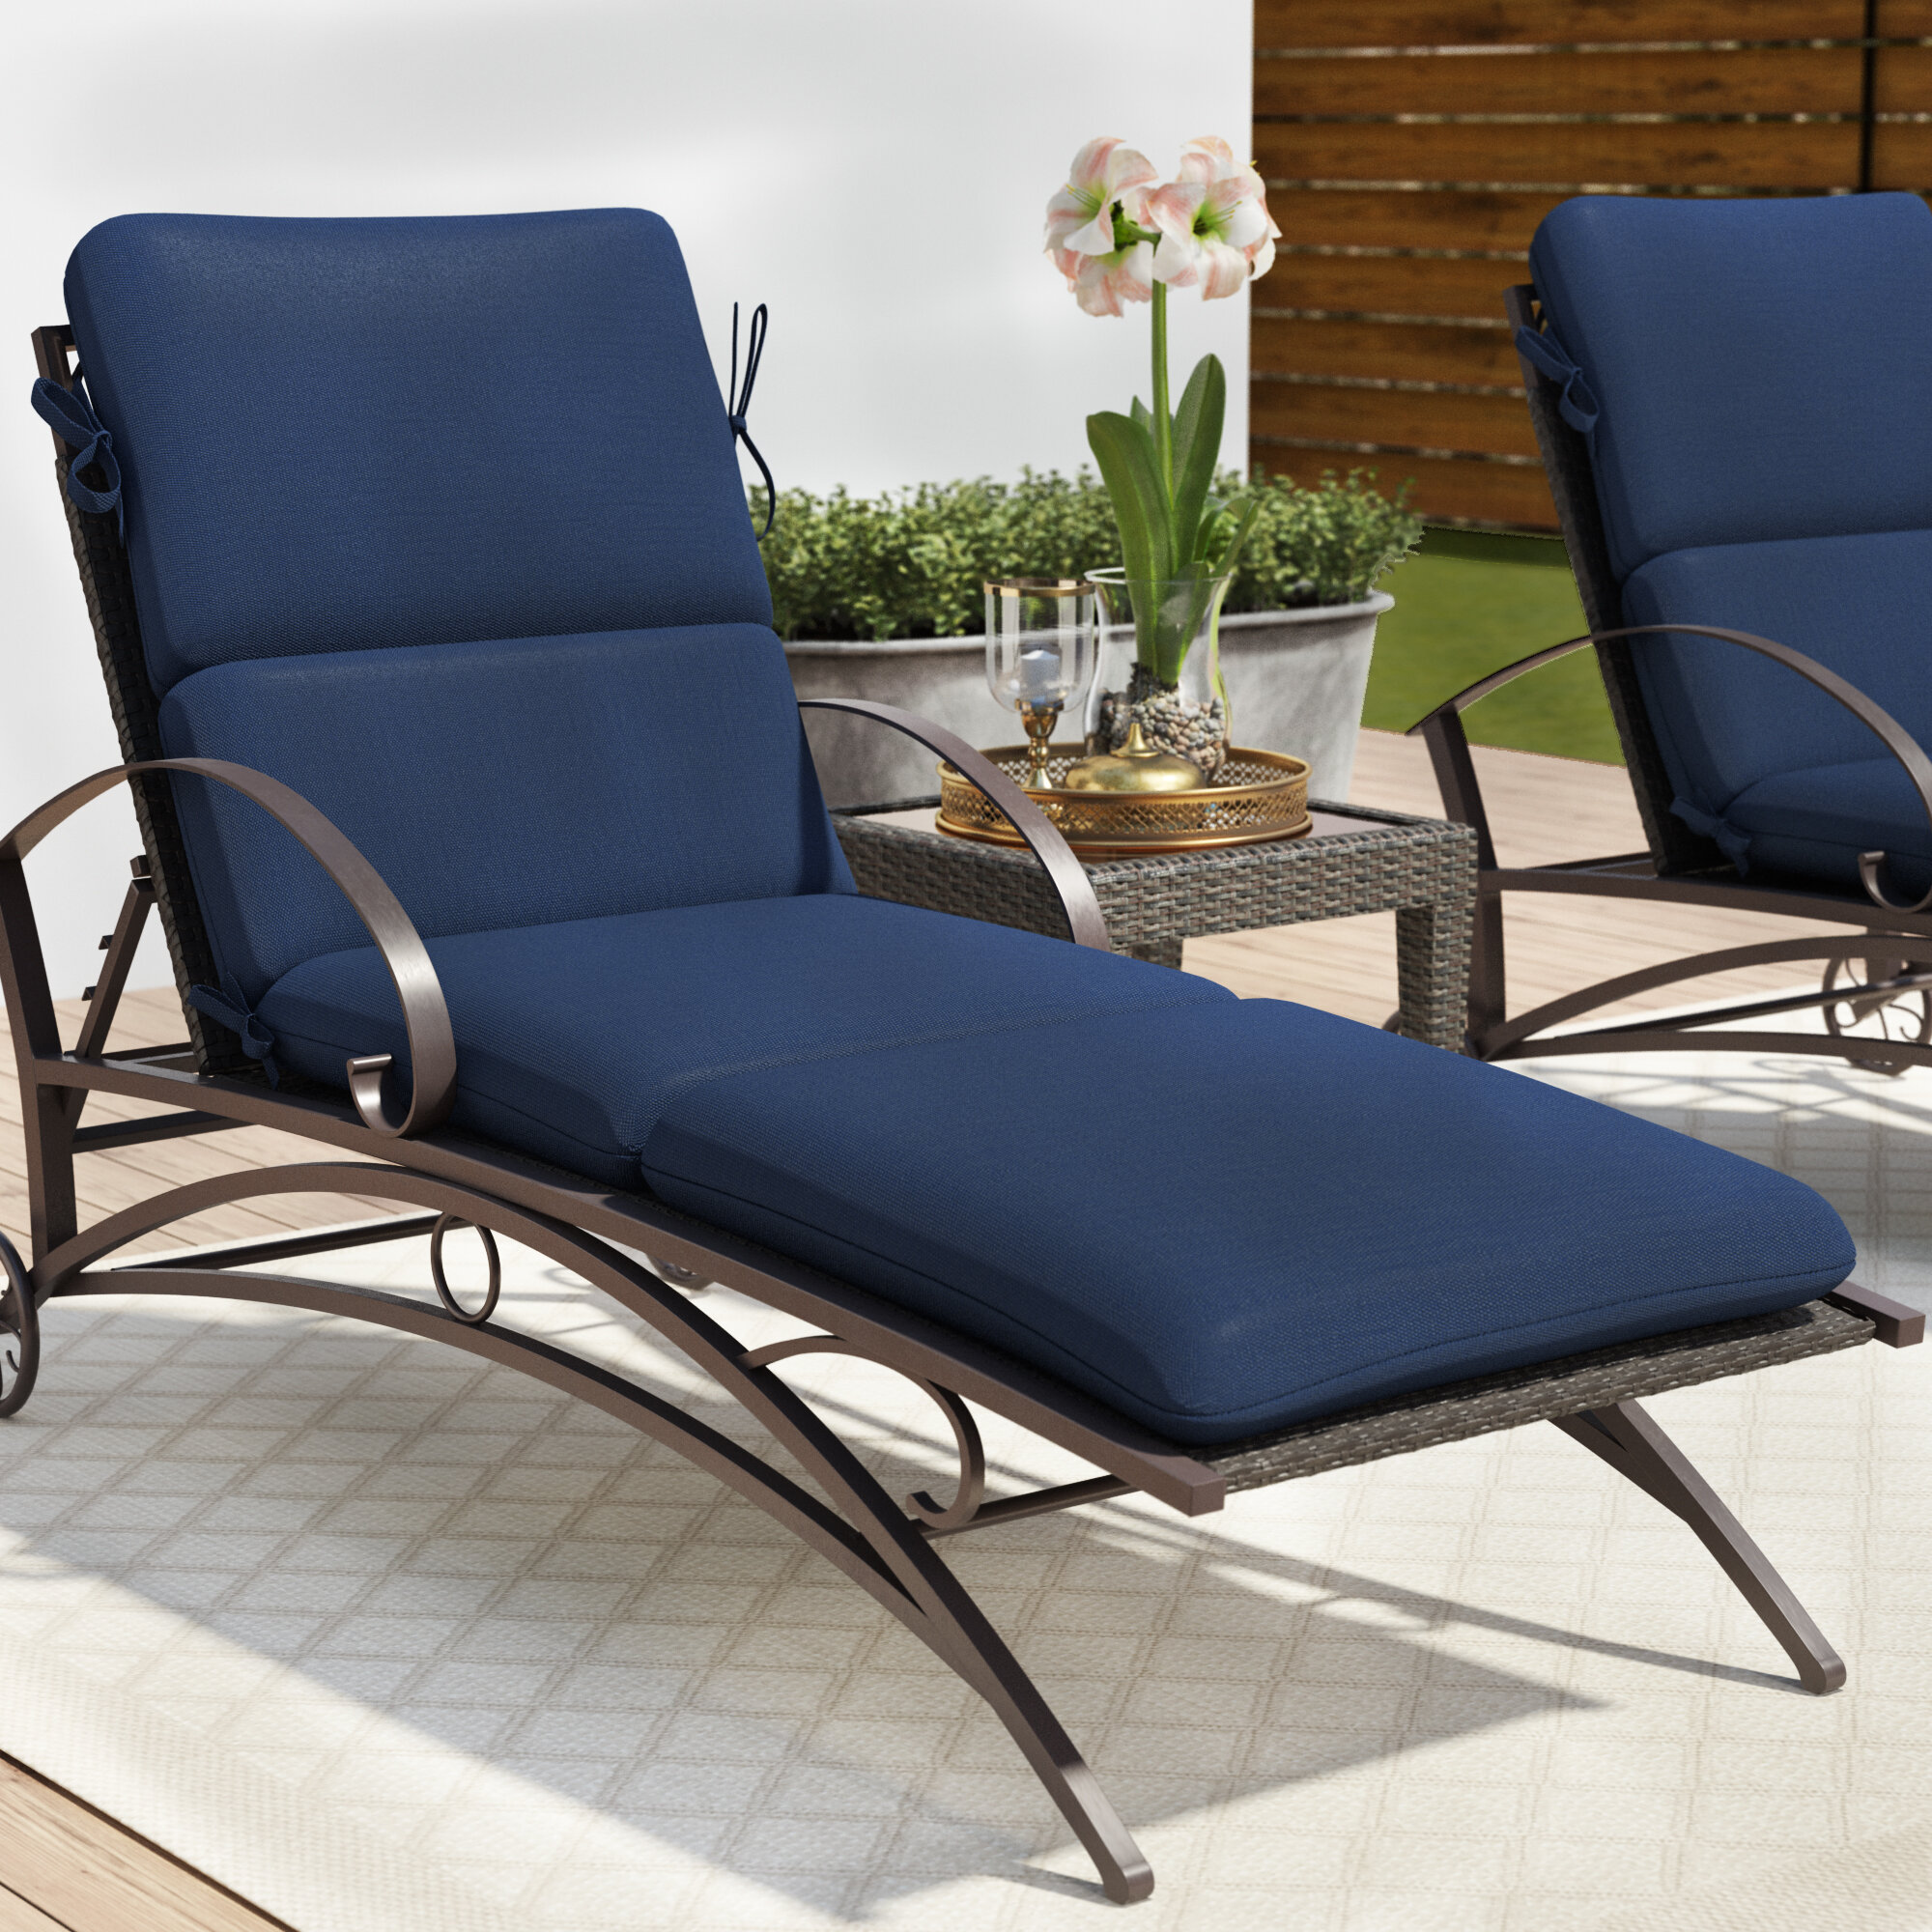 Chaise Lounge Patio Furniture Cushions Free Shipping Over 35 Wayfair